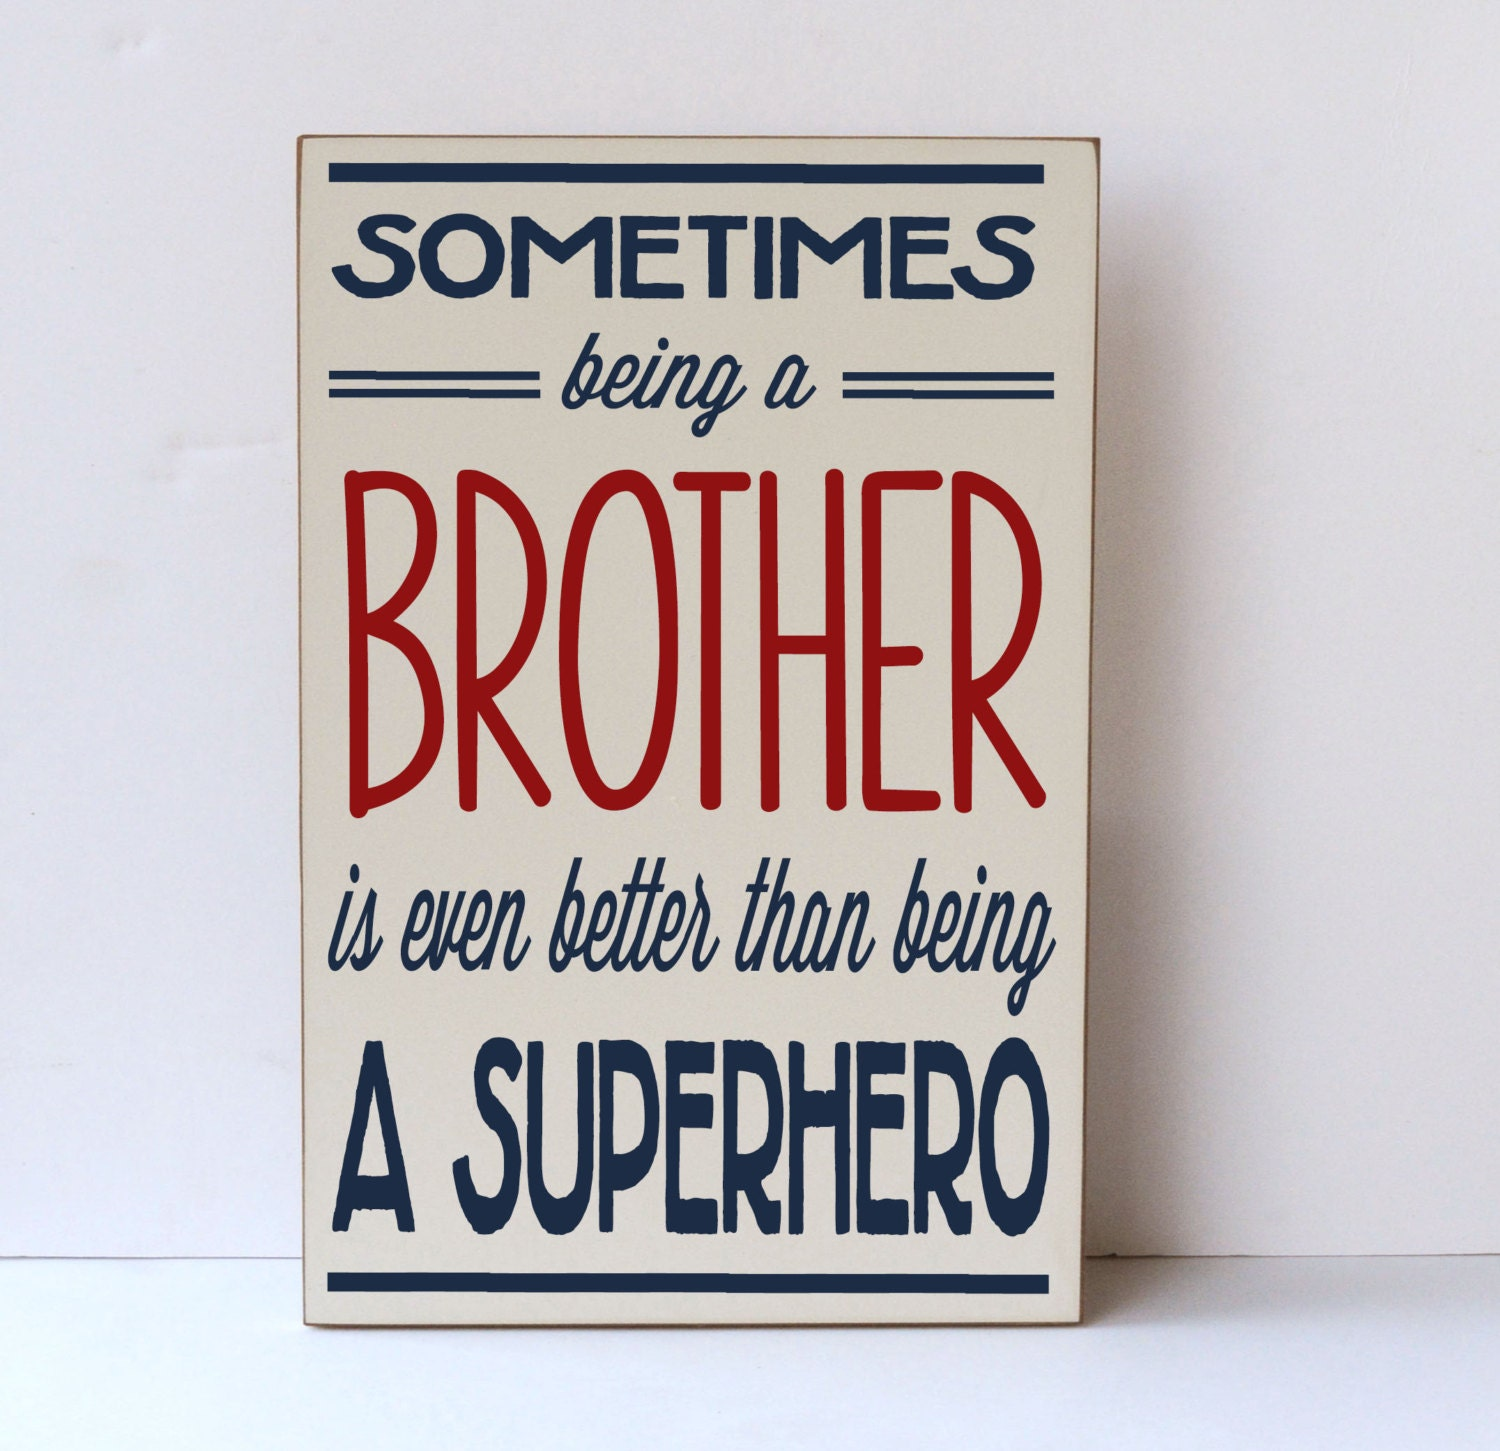 Brother Superhero Decor, Brother Wood Sign, Brother Gift. Rf Cable Assembly Manufacturers. Lifeline Power Wheel Review Nyc Trade School. Safe Drivers Insurance Jobs In Pharmacy Field. Carpet Cleaning Services Kansas City. Richmond The American International University In London. Electrical Drafting Services. Medical Malpractice Lawyers In Michigan. Great Ecommerce Websites Eric Schmidt Colbert